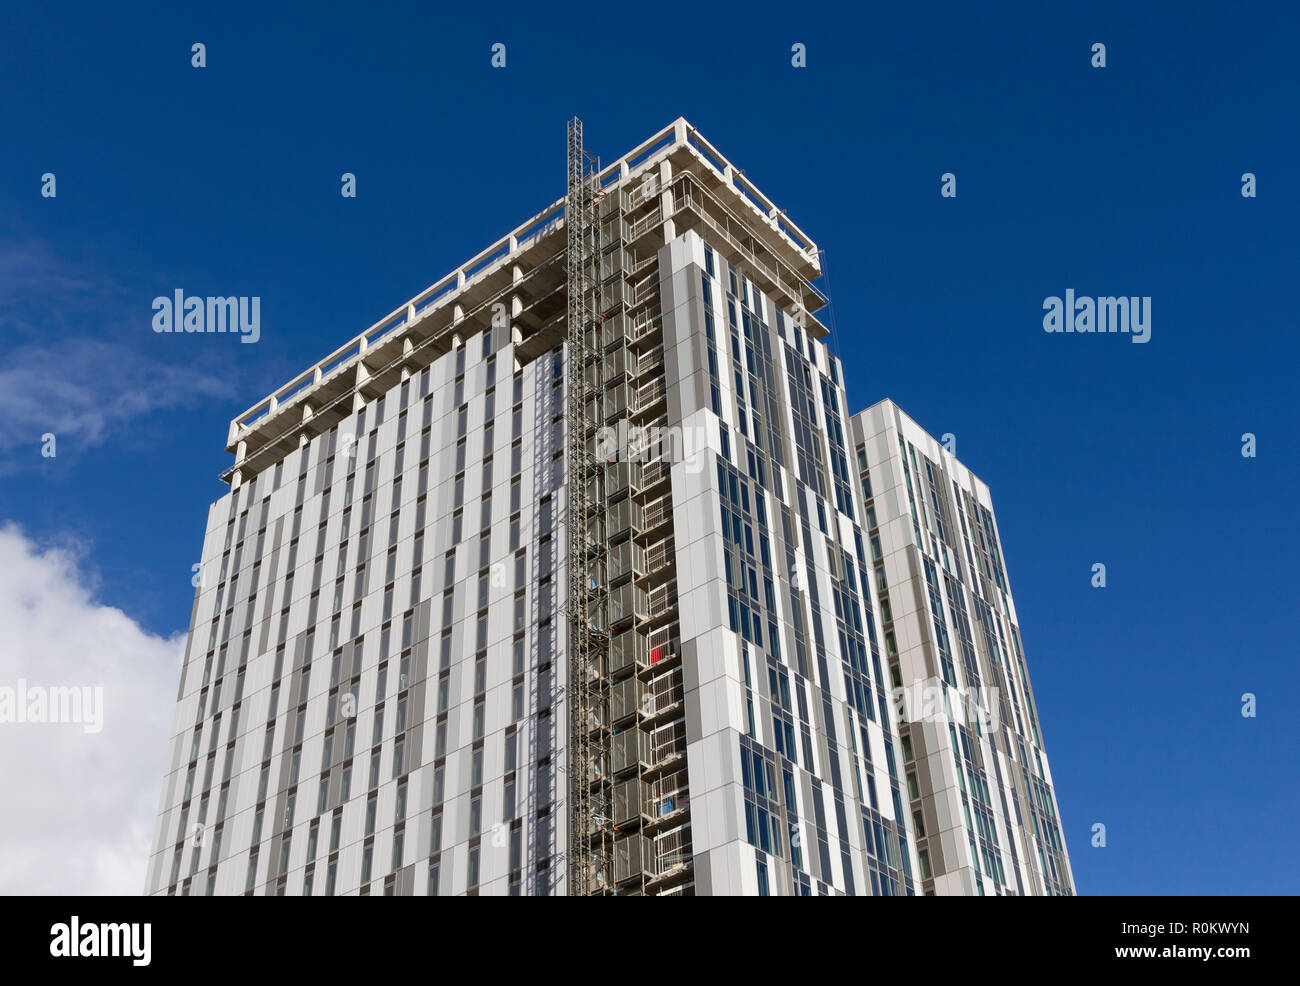 New building construction at MediaCityUK, Salford Quays, Manchester - Stock Image